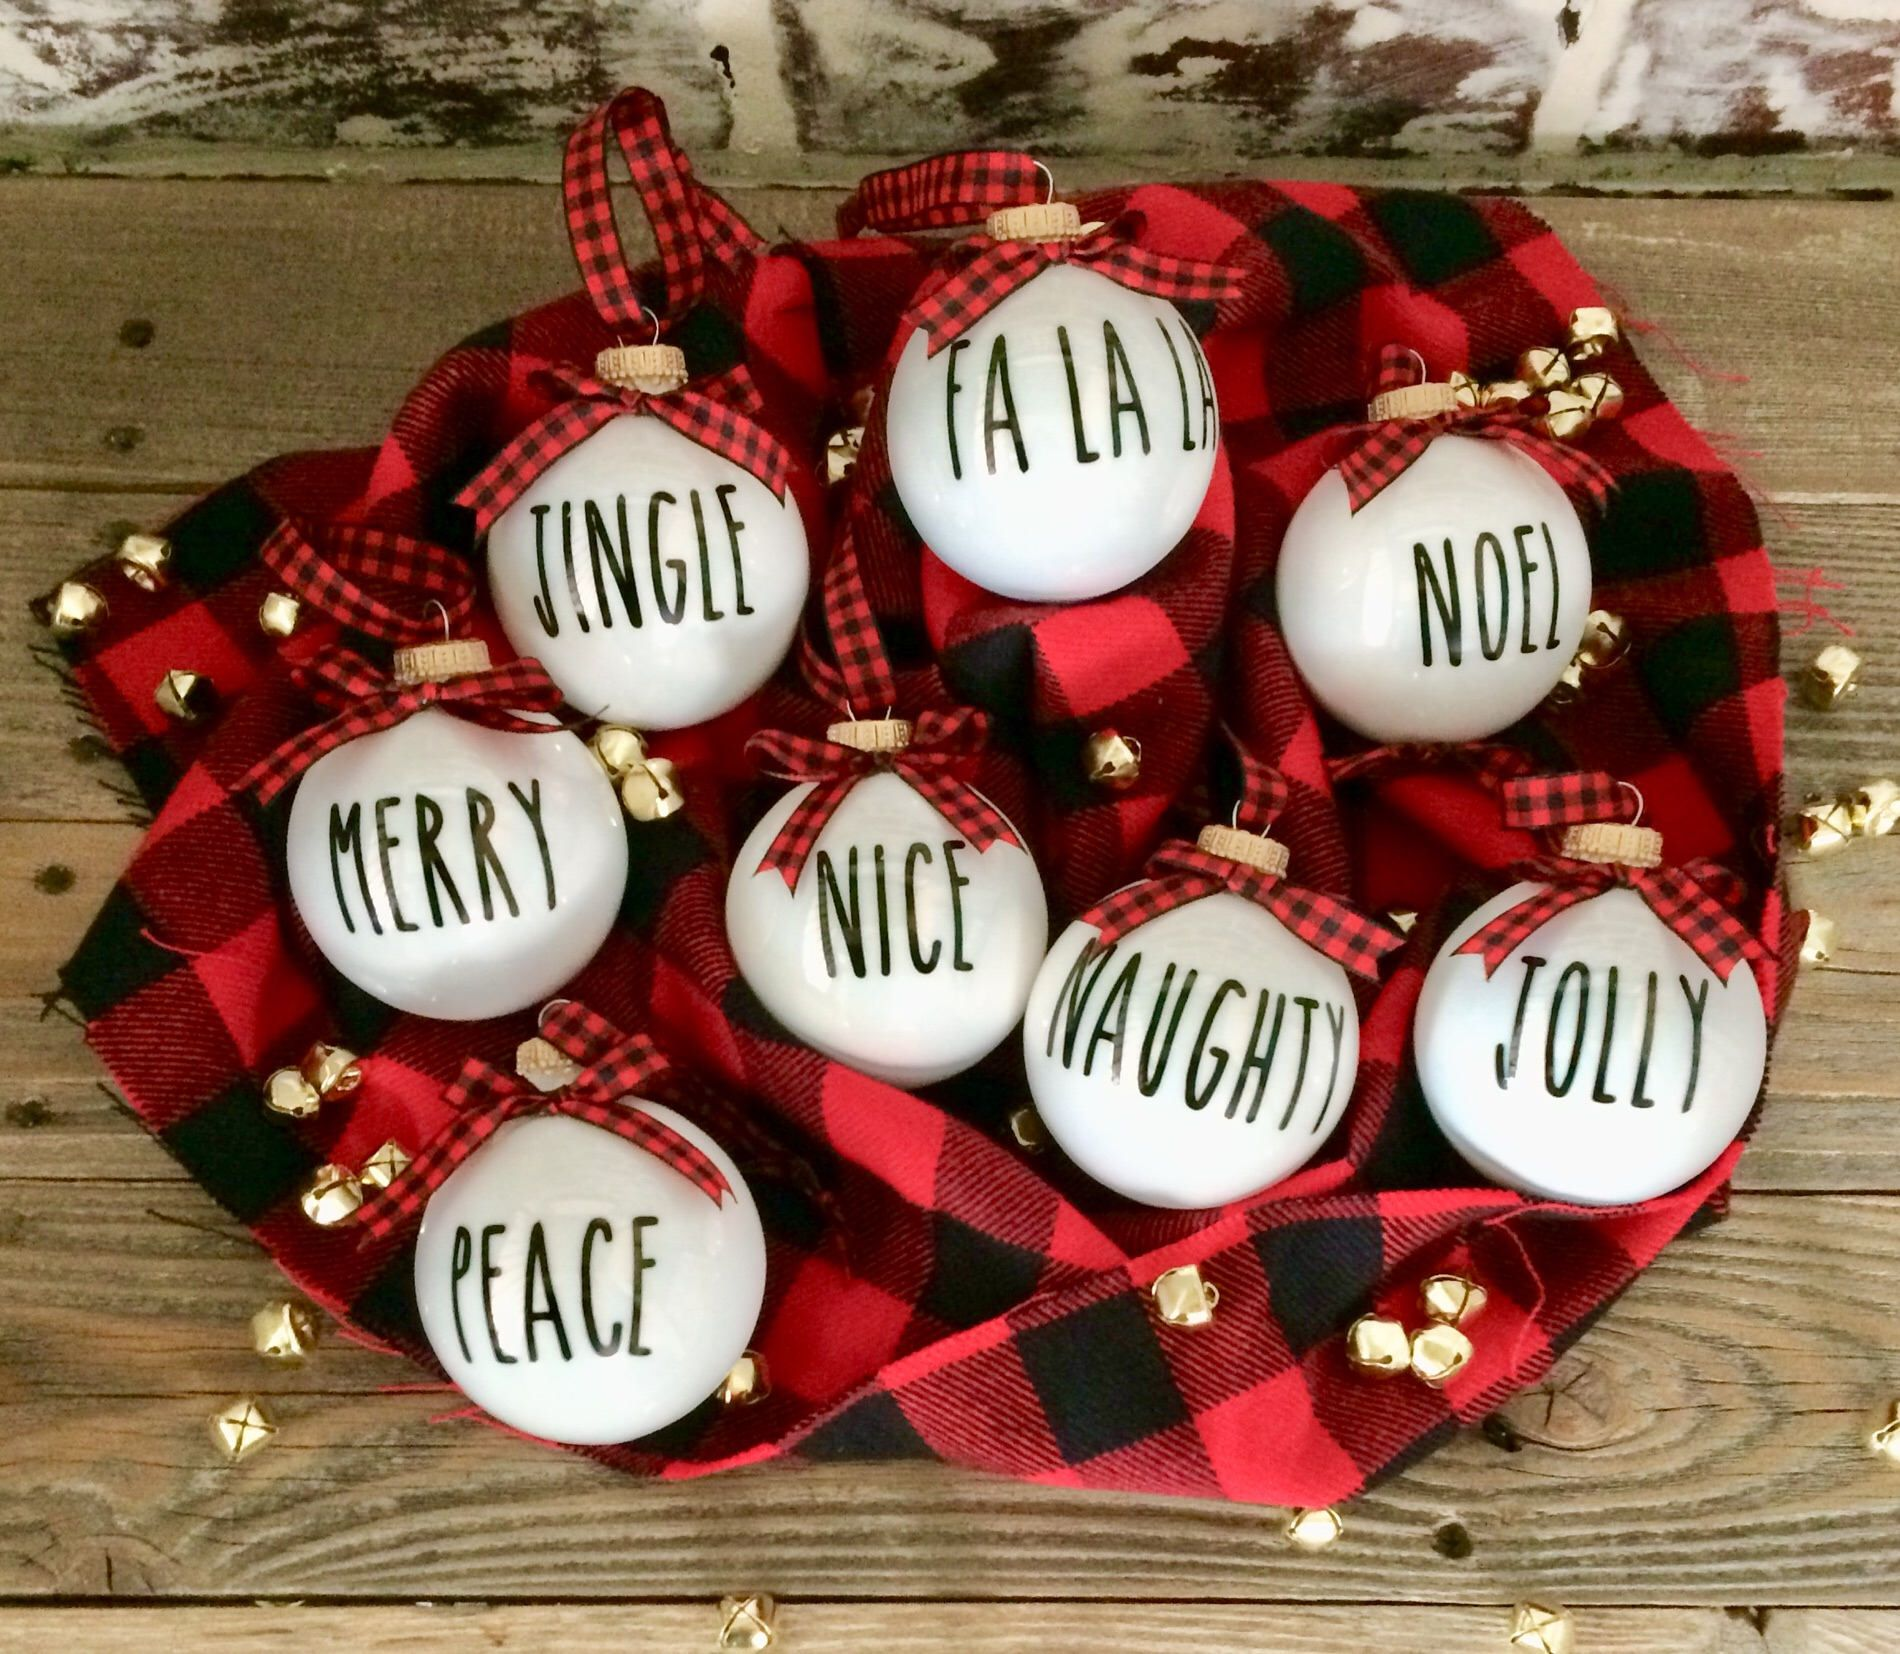 8 Rae Dunn Inspired Christmas Ornaments White And Black Ornaments